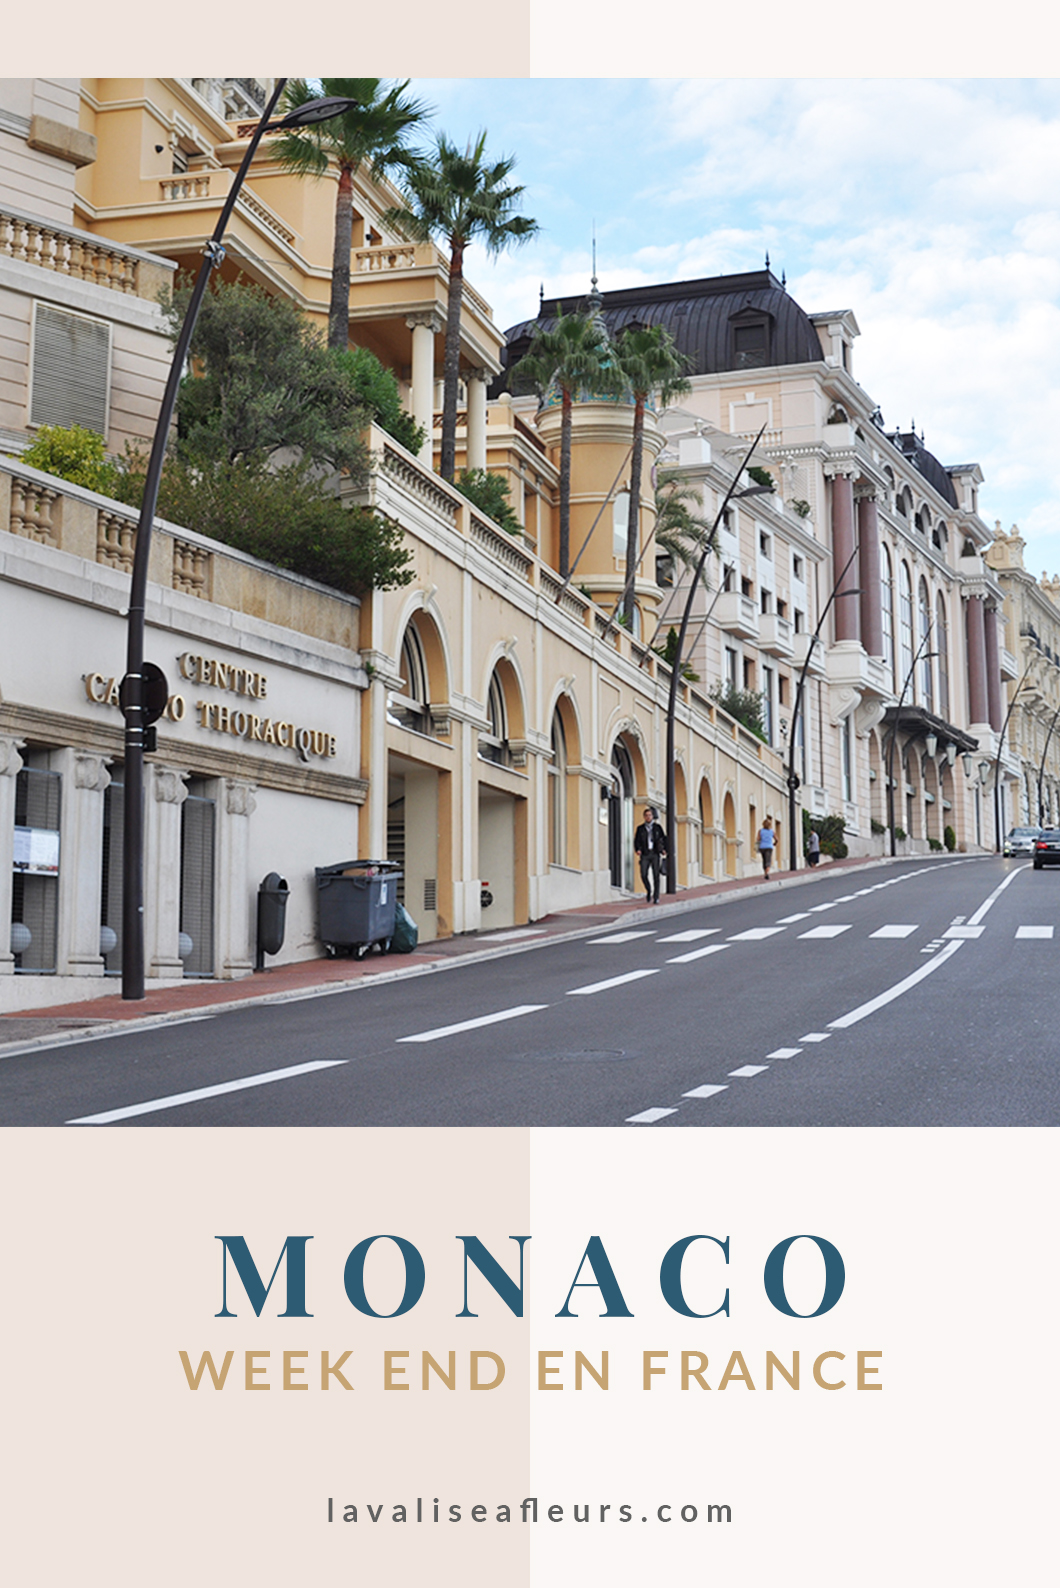 Monaco, idée de week end en France